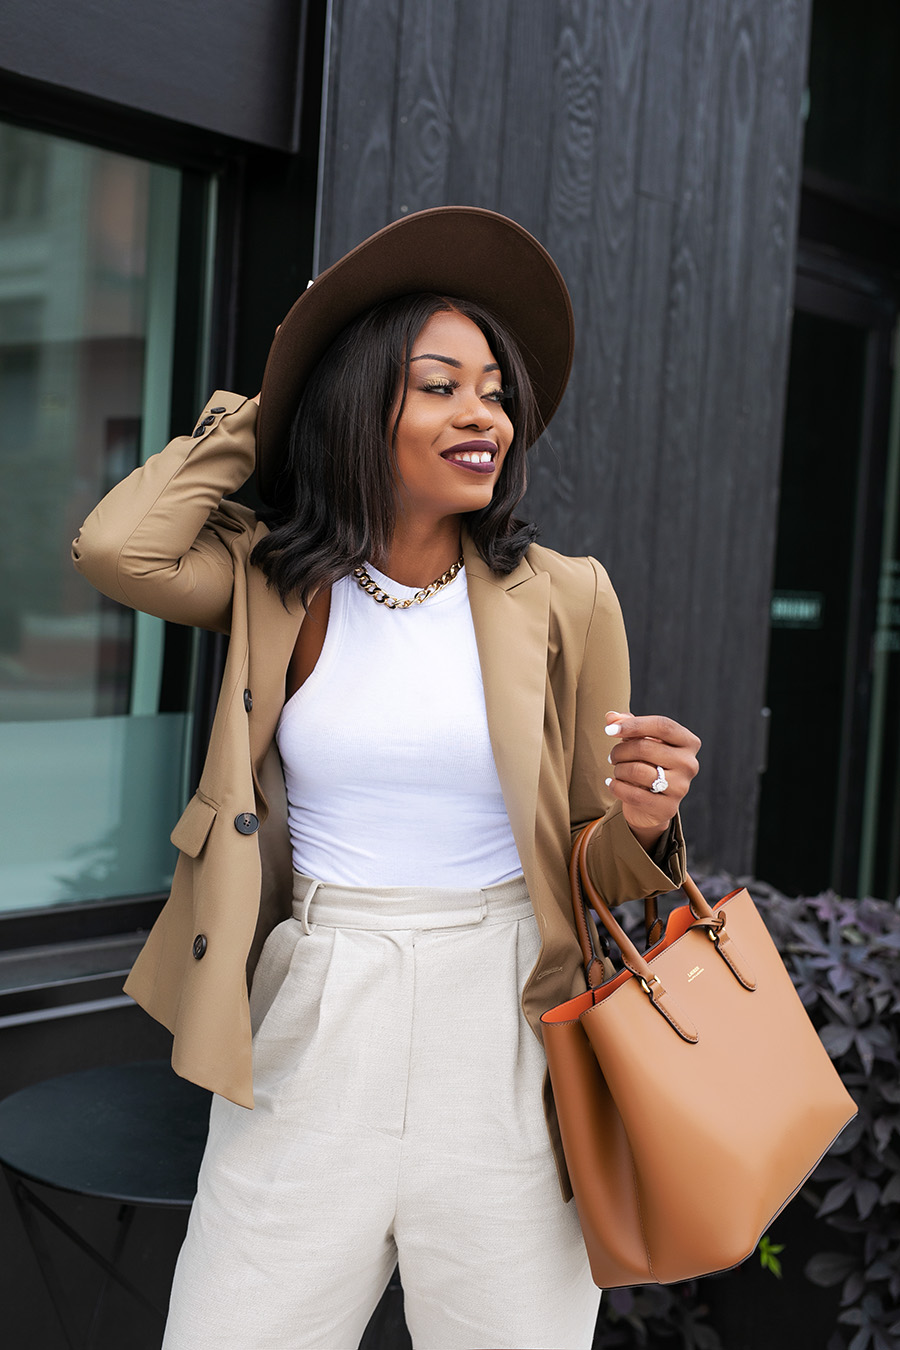 fall style in neutrals